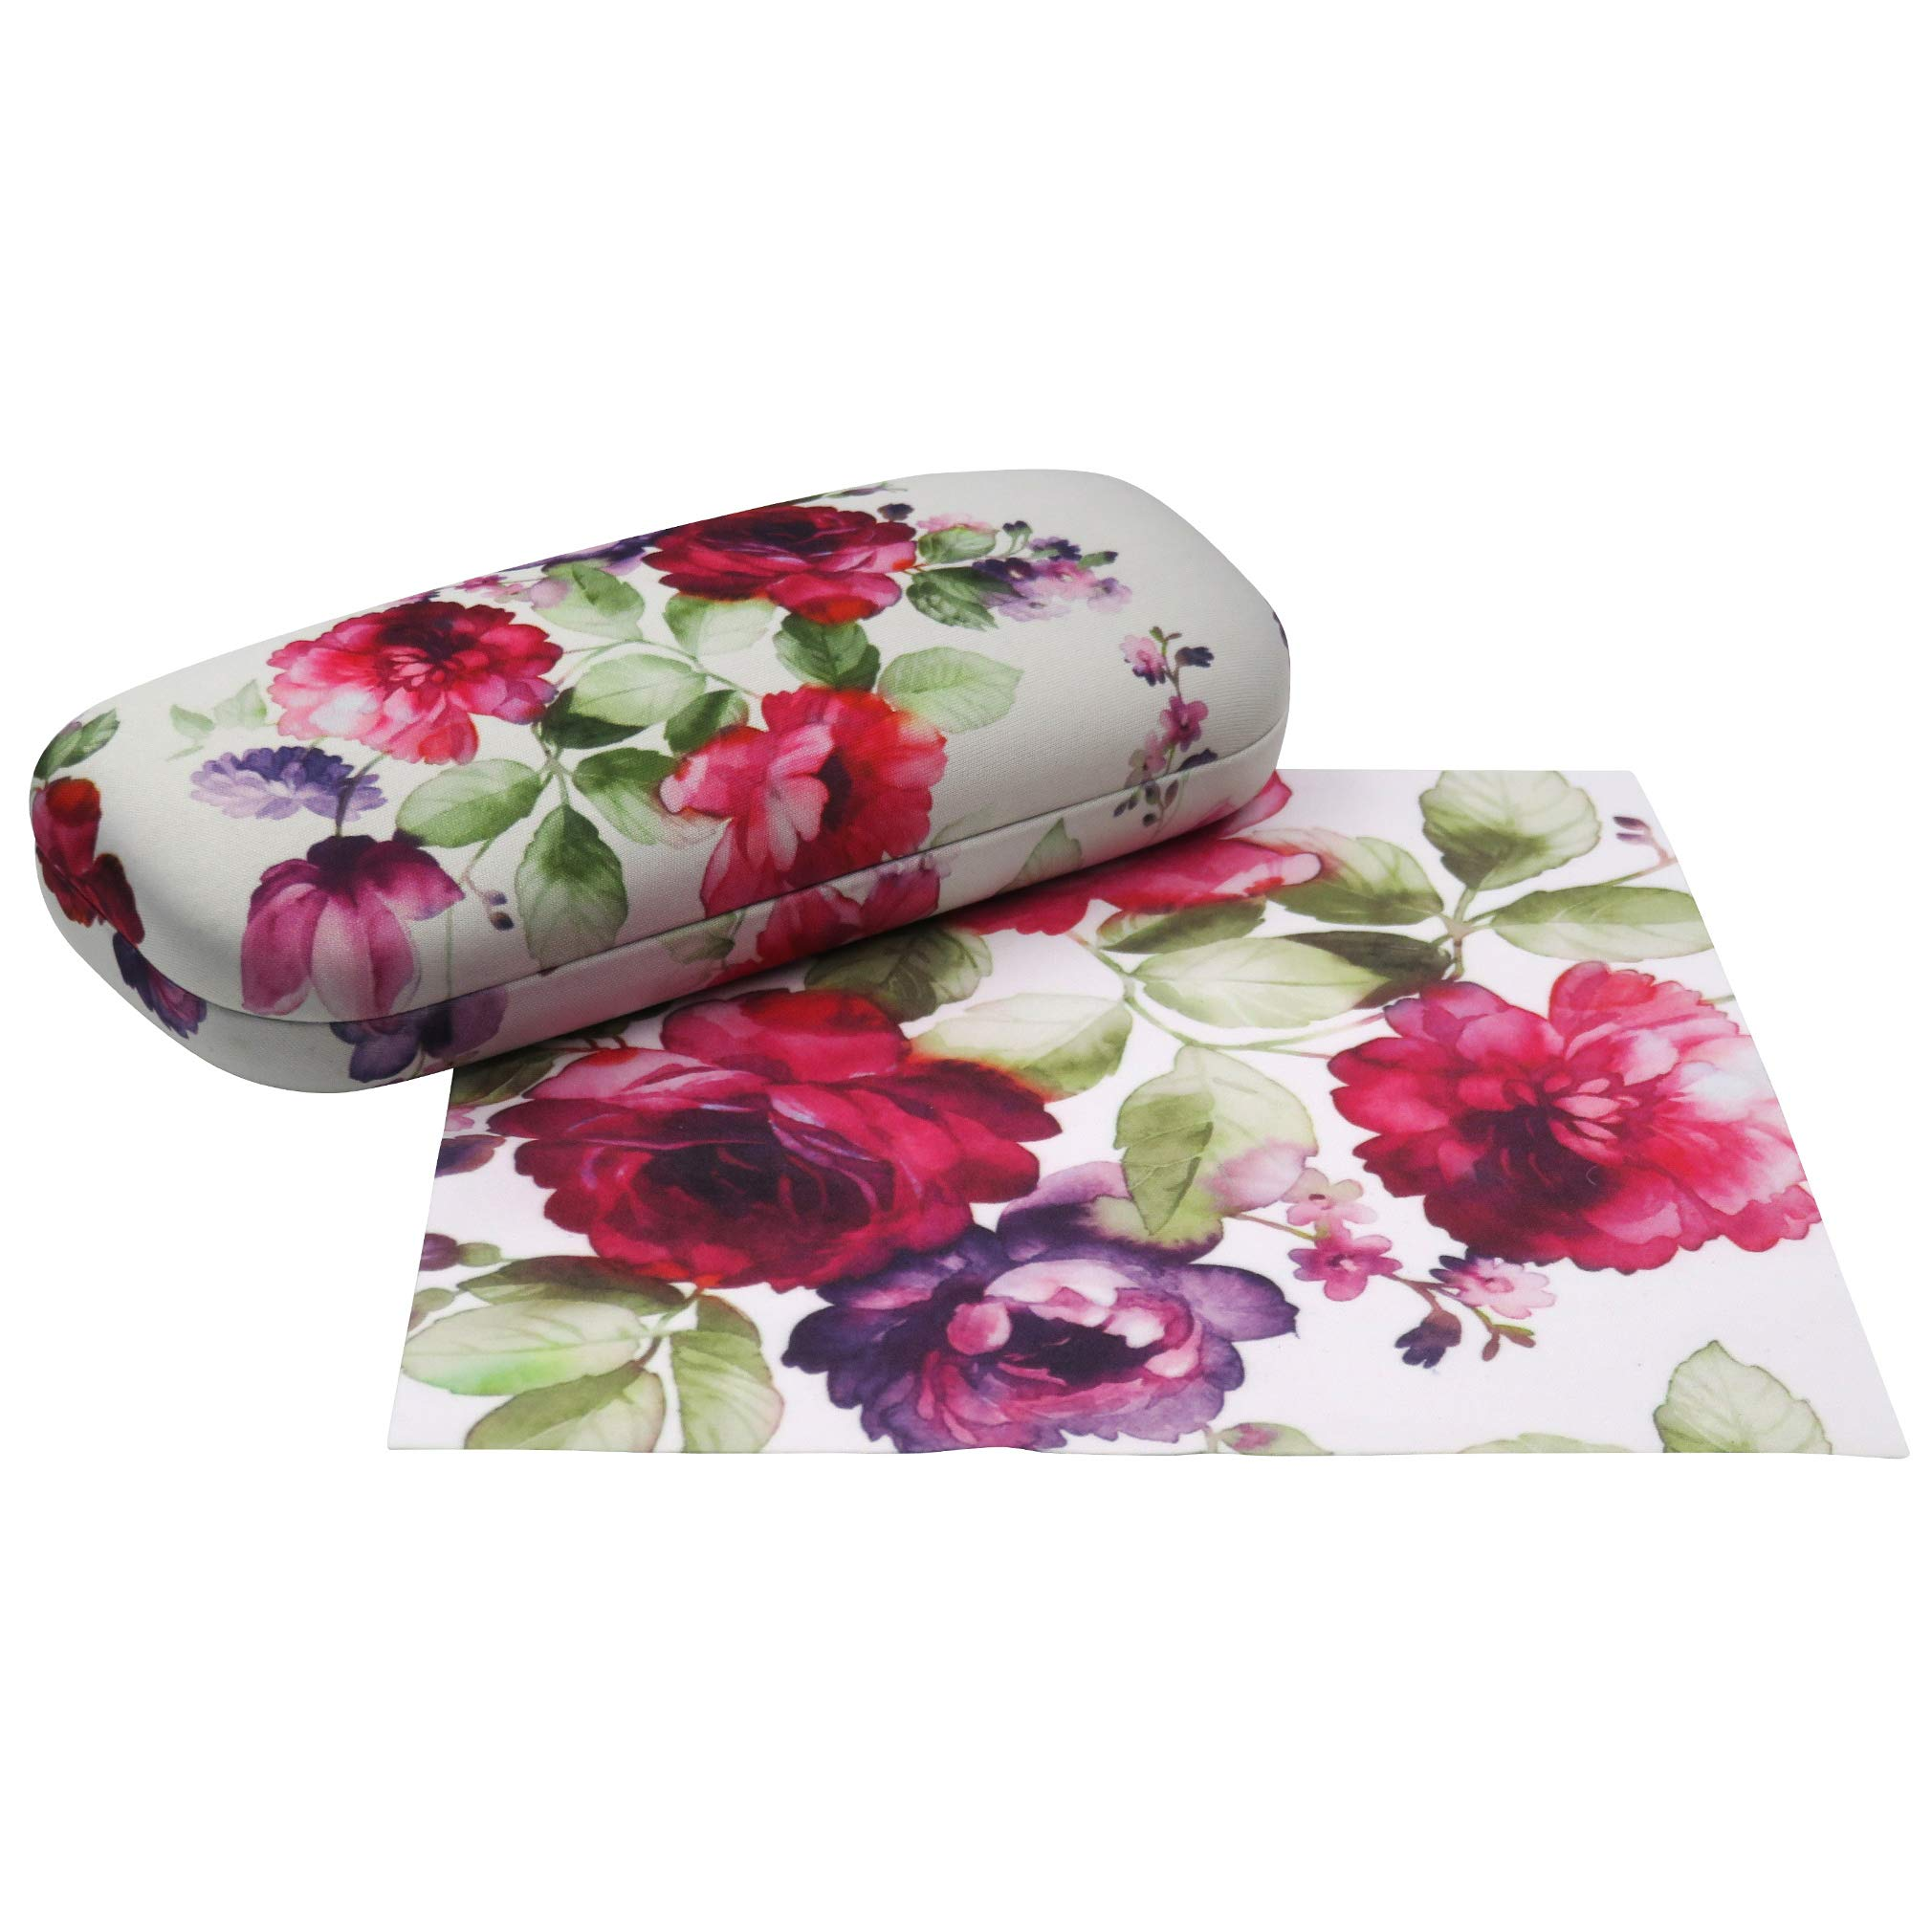 Floral Hard Shell Eyeglass Case for women Medium Sunglasses case with Cleaning Cloth by Rachel Rowberry (AS126 Cranberry Rose) by MyEyeglassCase (Image #6)